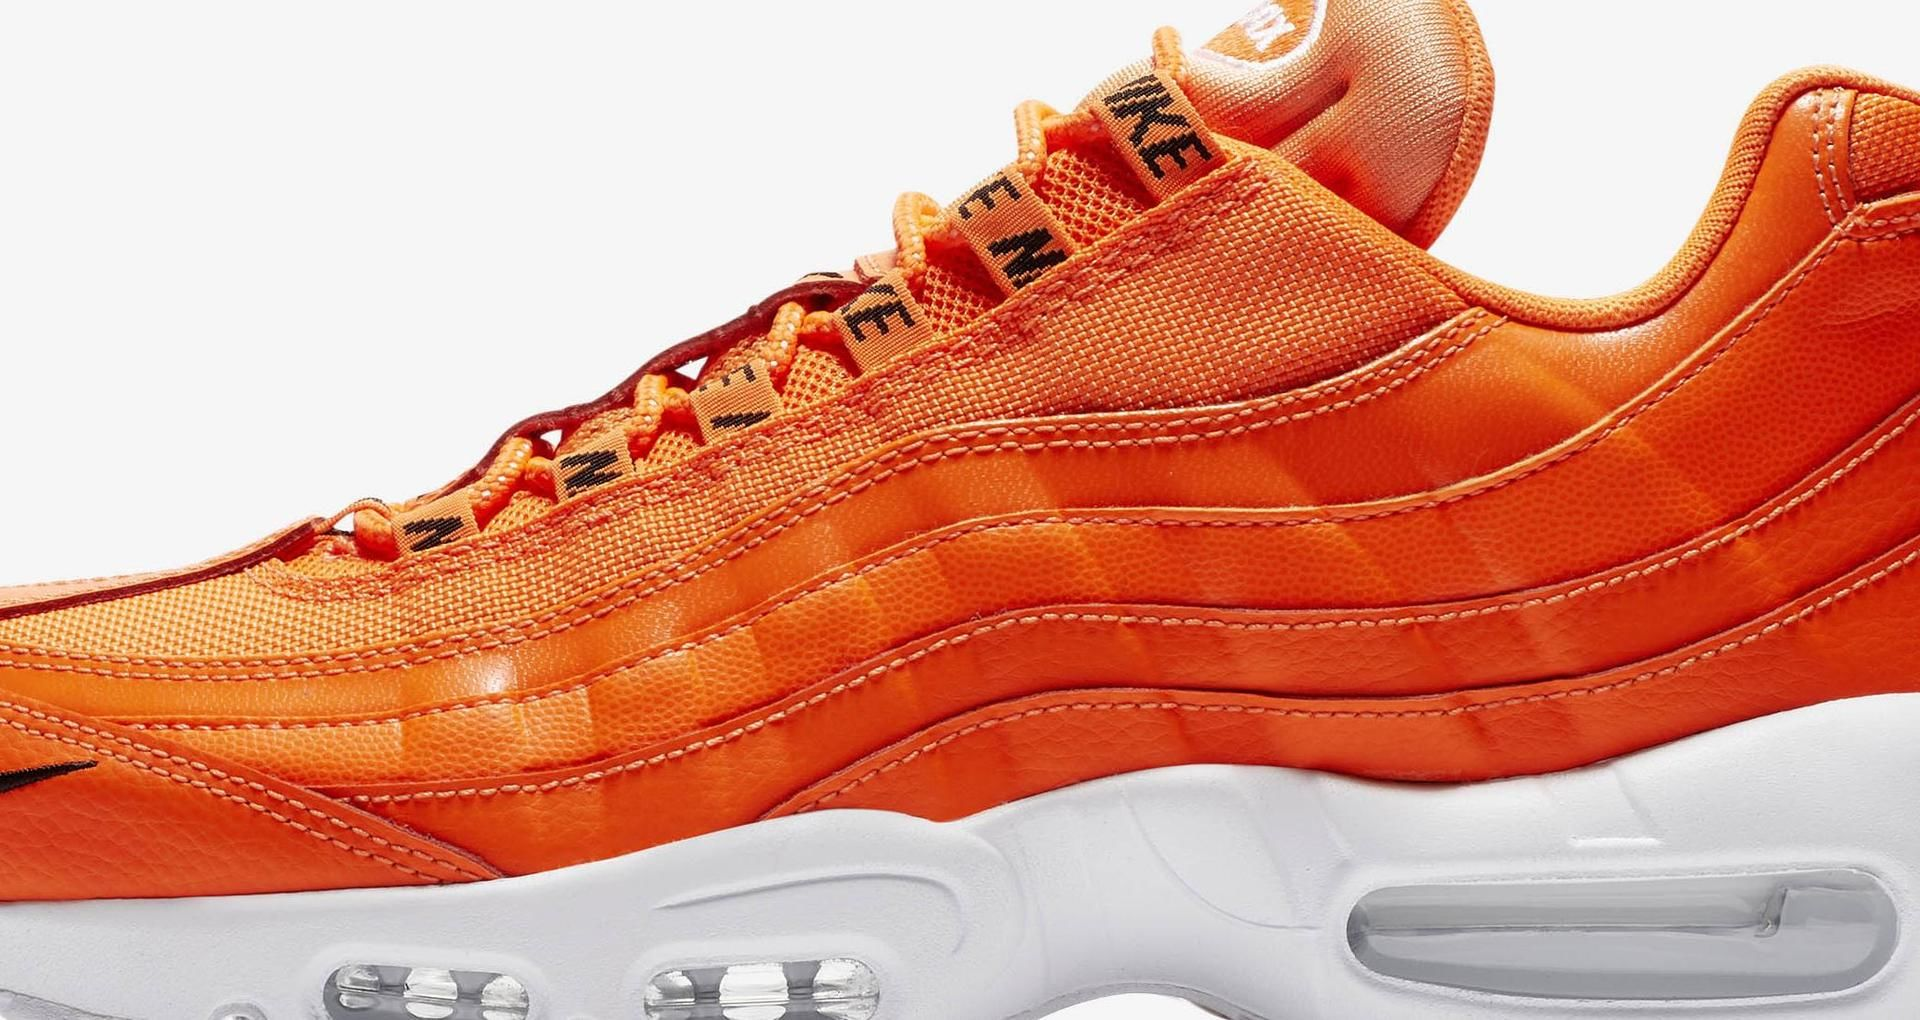 Nike Air Max 95 Premium 'Total Orange & White & Black